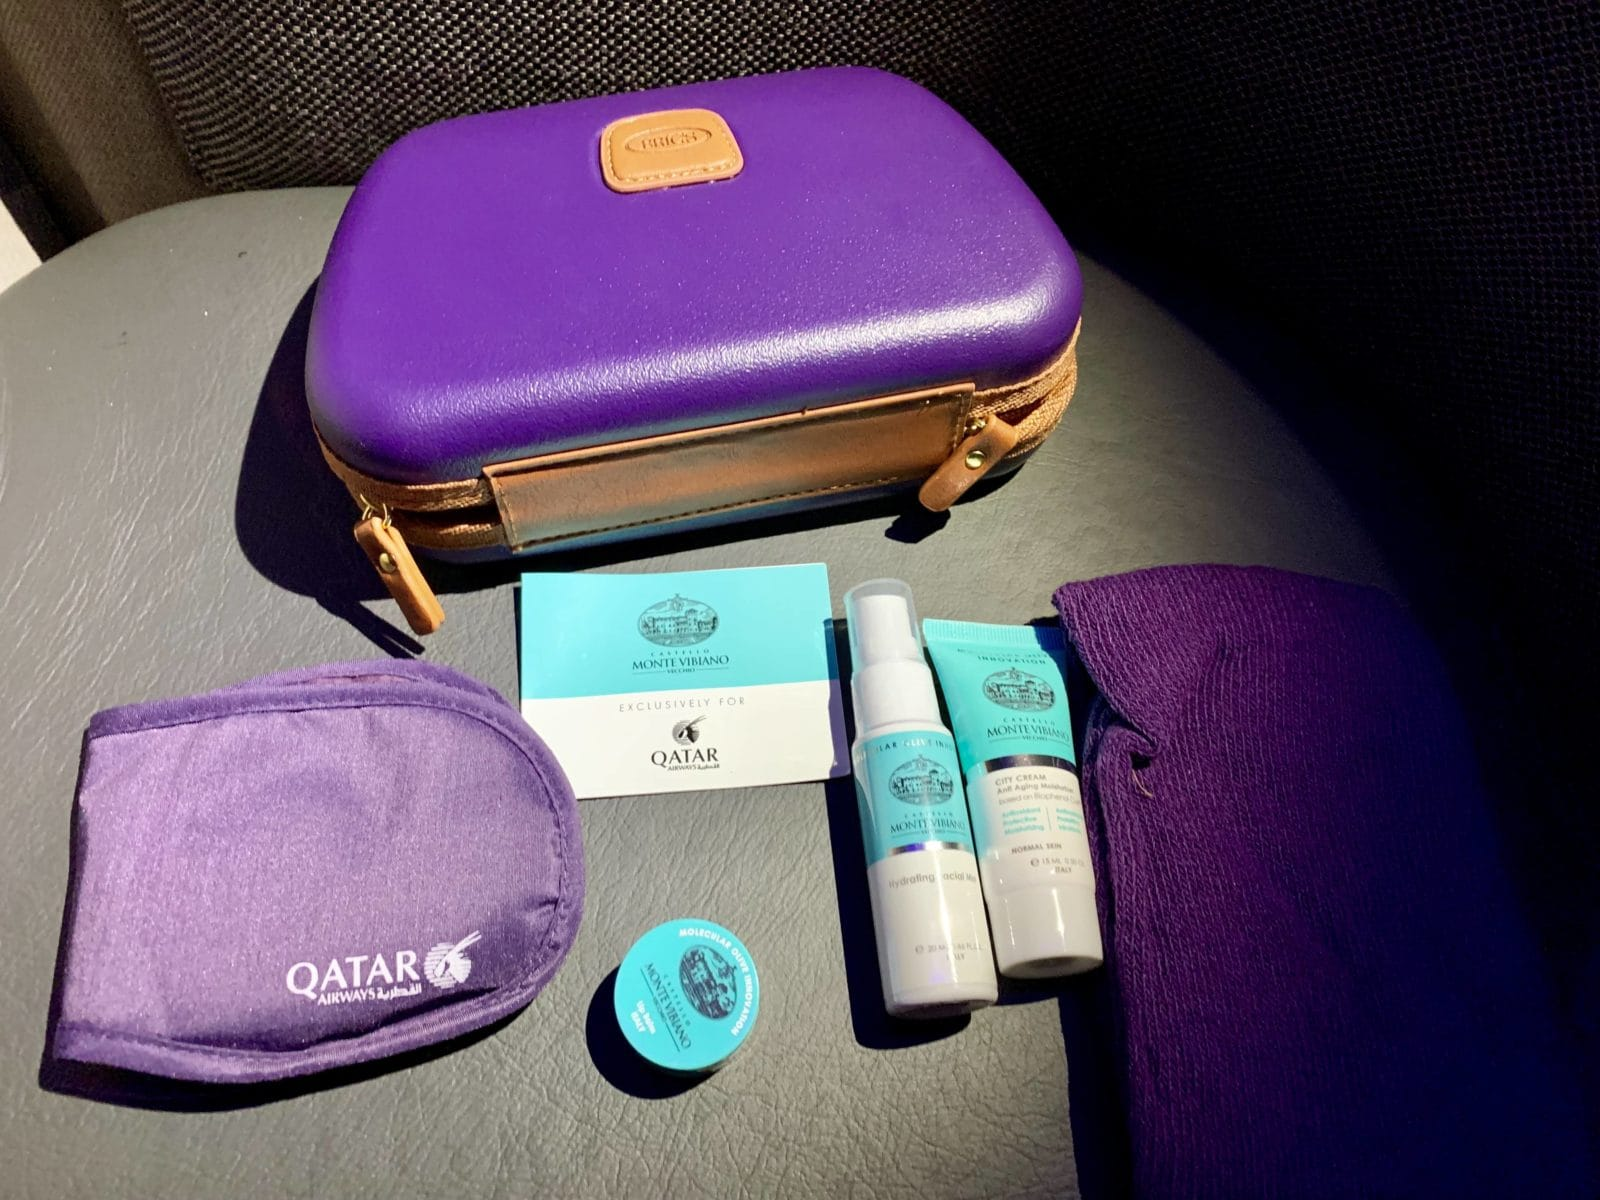 Qatar Airways Qsuite Boeing 777-300ER Amenity Kit